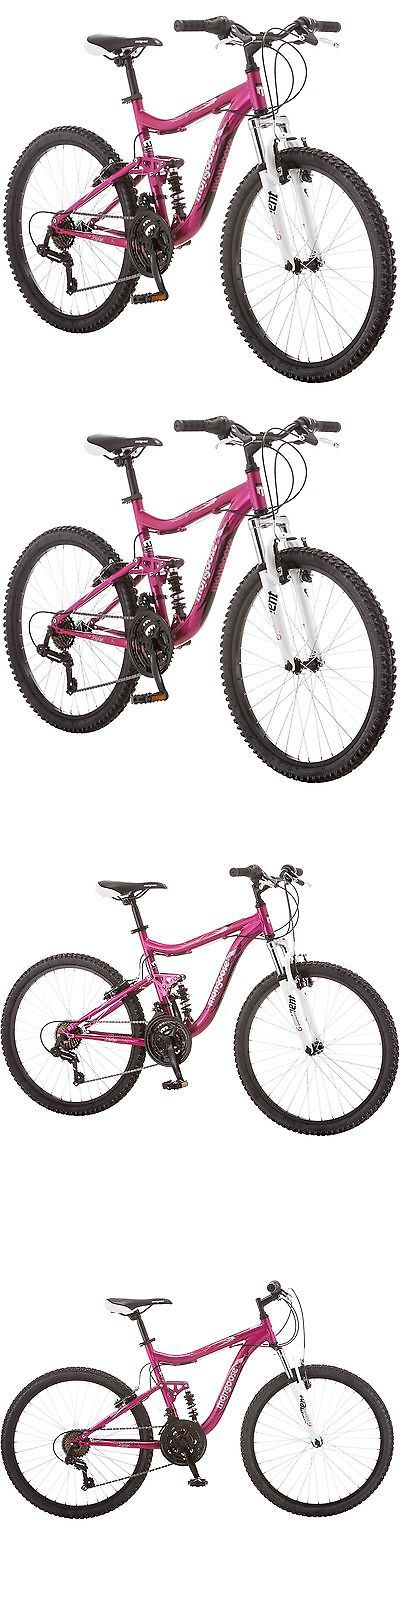 bicycles: 24 Mongoose Ledge 2.1 Girls Mountain Bike 21 Speed Alloy Rims Pink -> BUY IT NOW ONLY: $140.16 on eBay!